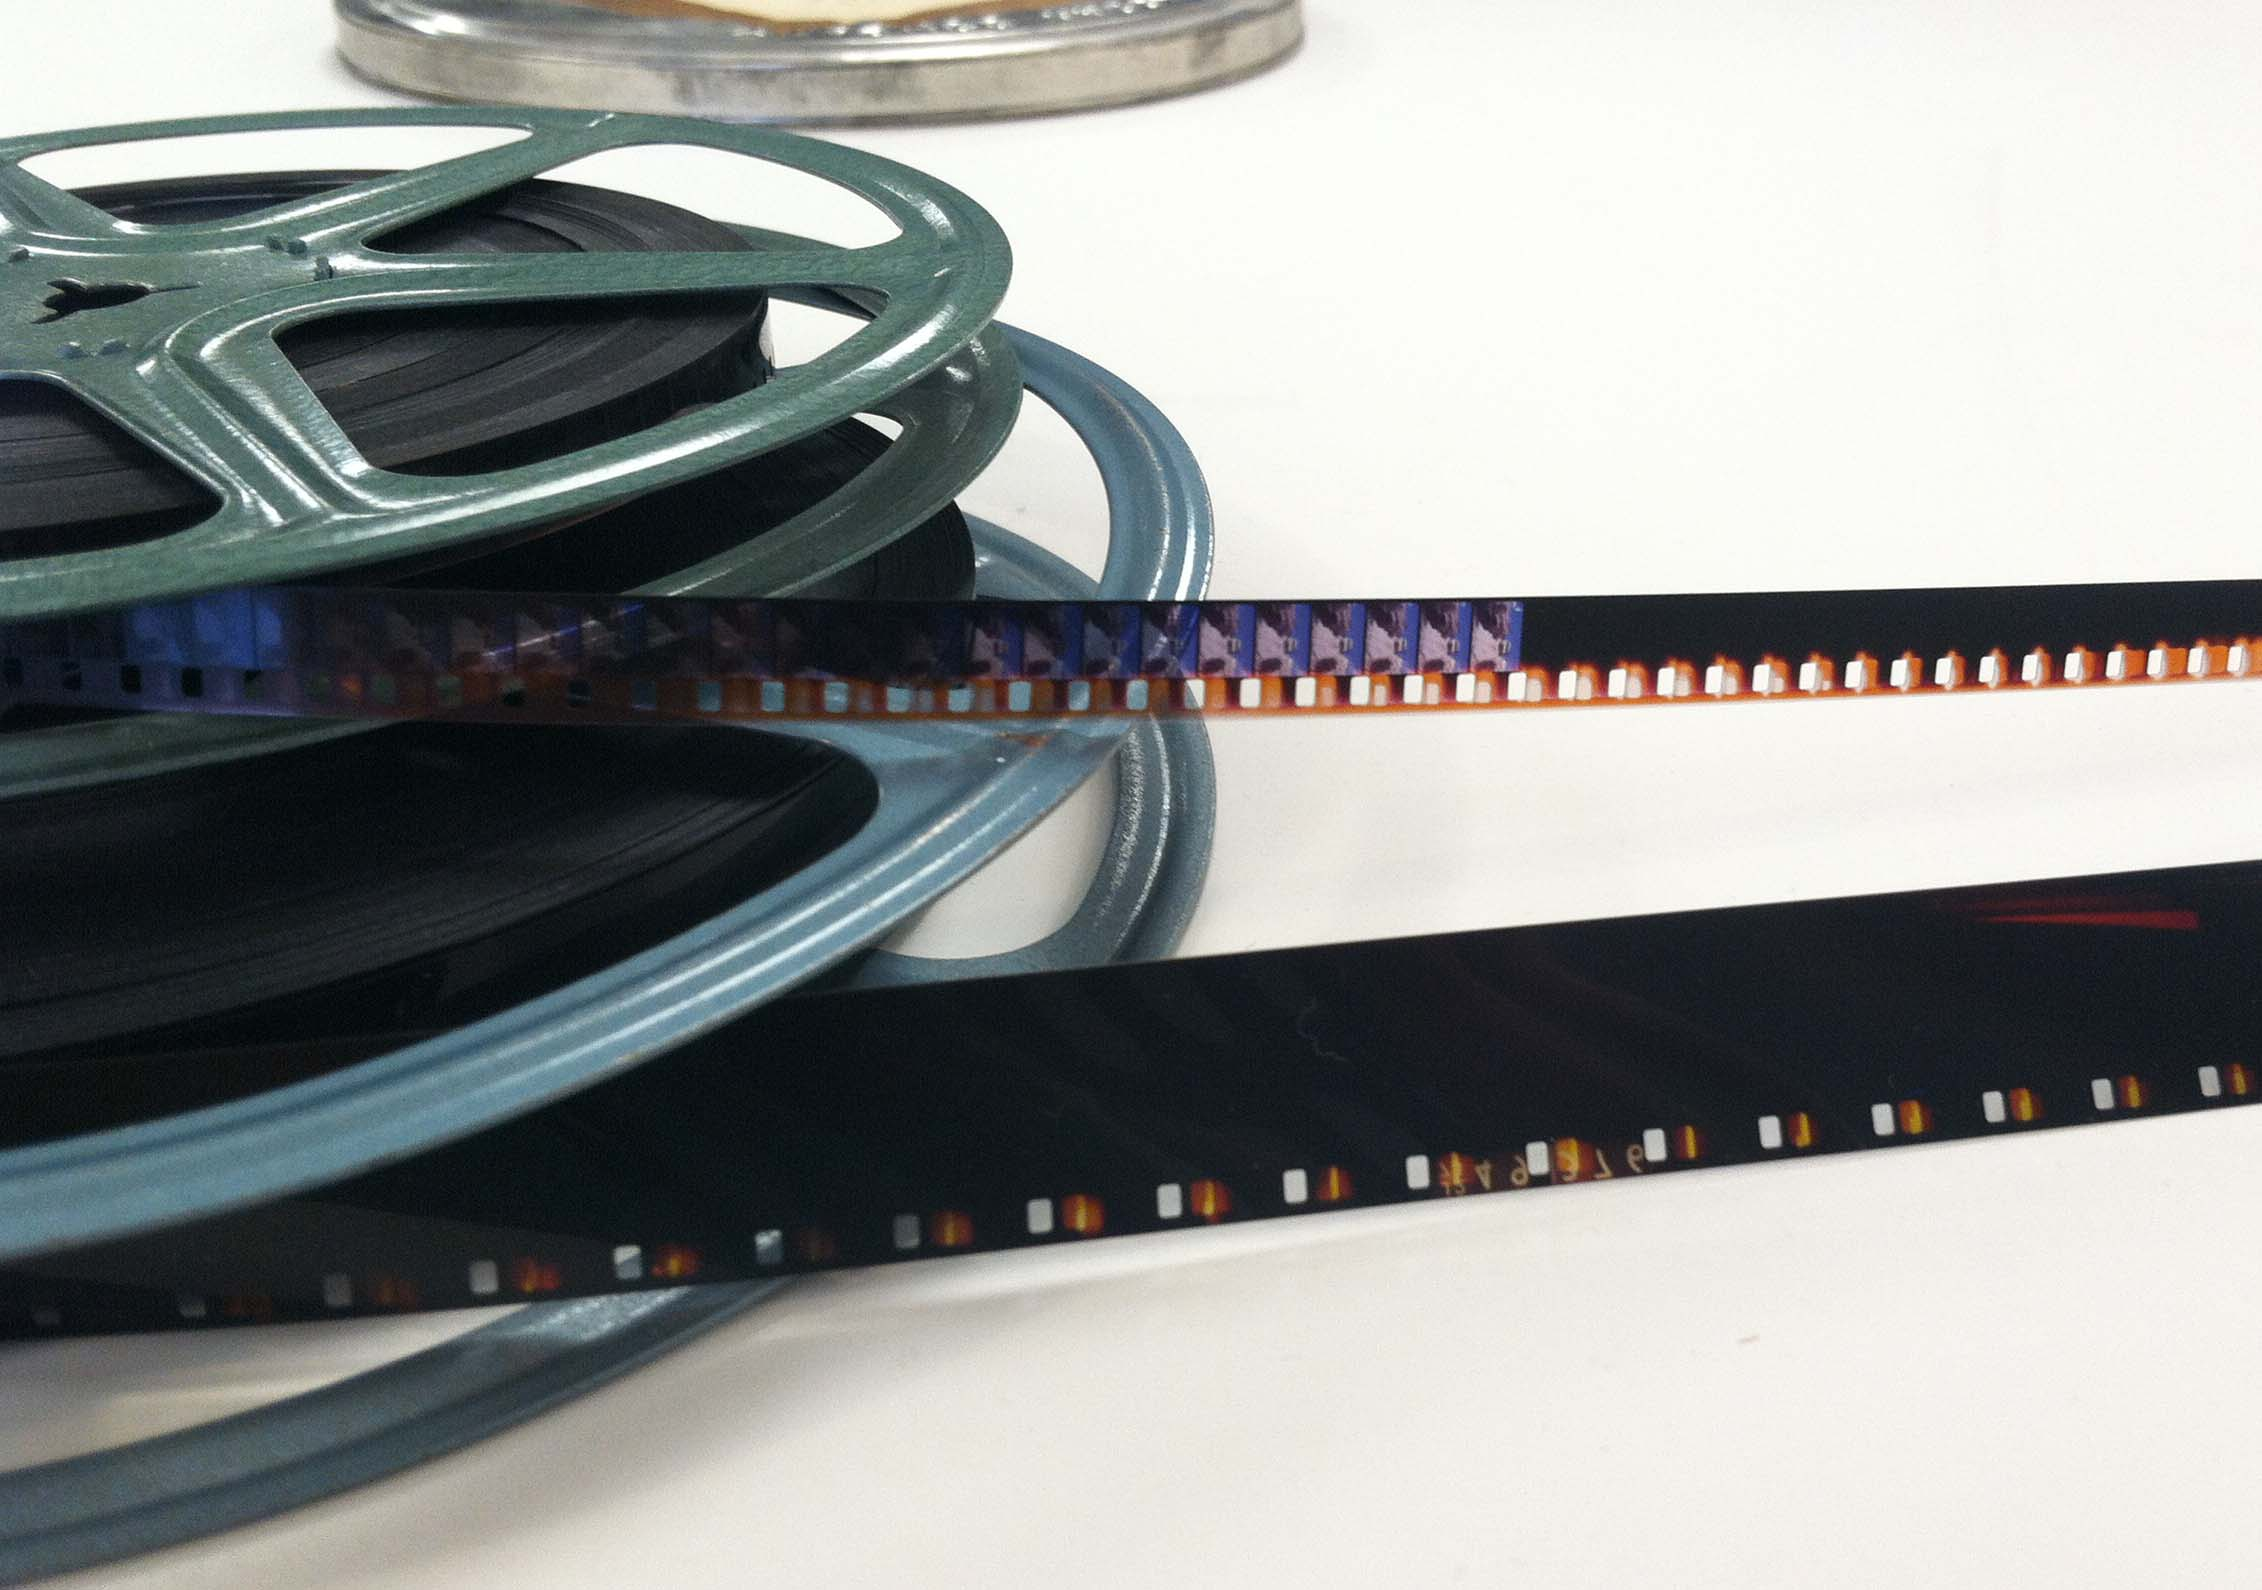 8 and 16mm film pic